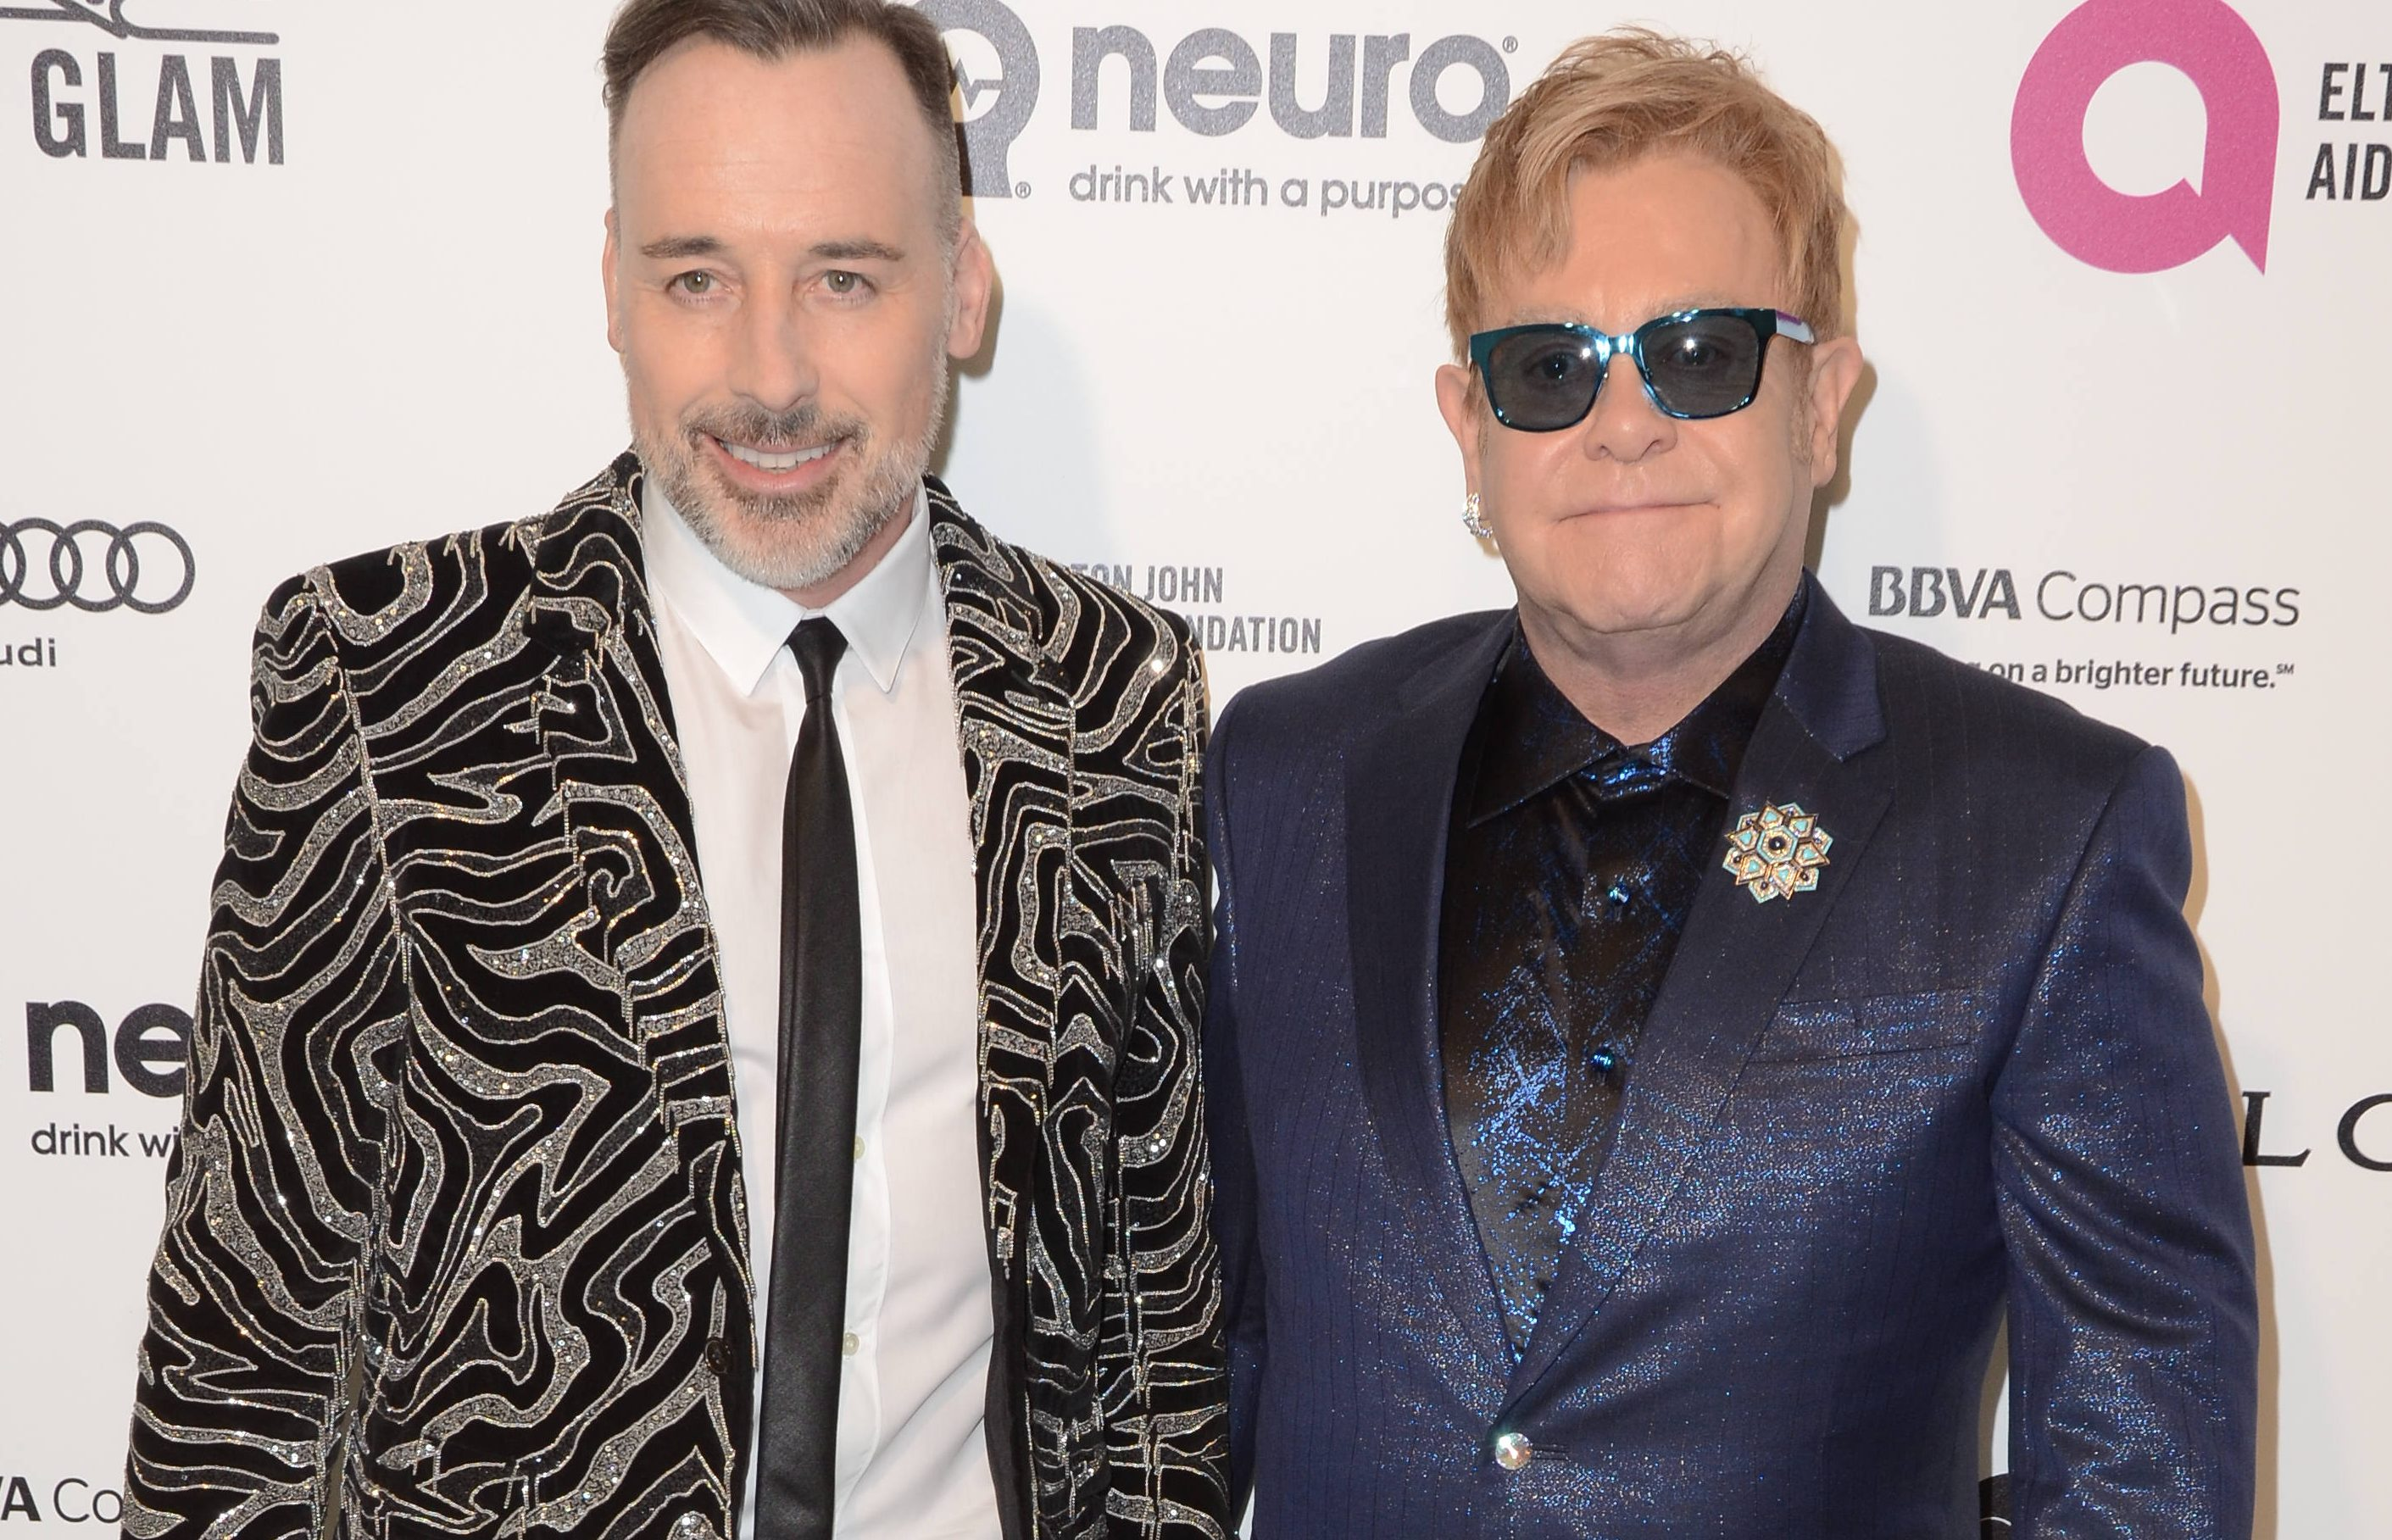 The Academy Awards Viewing Party: Wonderful Crazy Night to Benefit the Elton John AIDS Foundation, Los Angeles, America - 28 Feb 2016